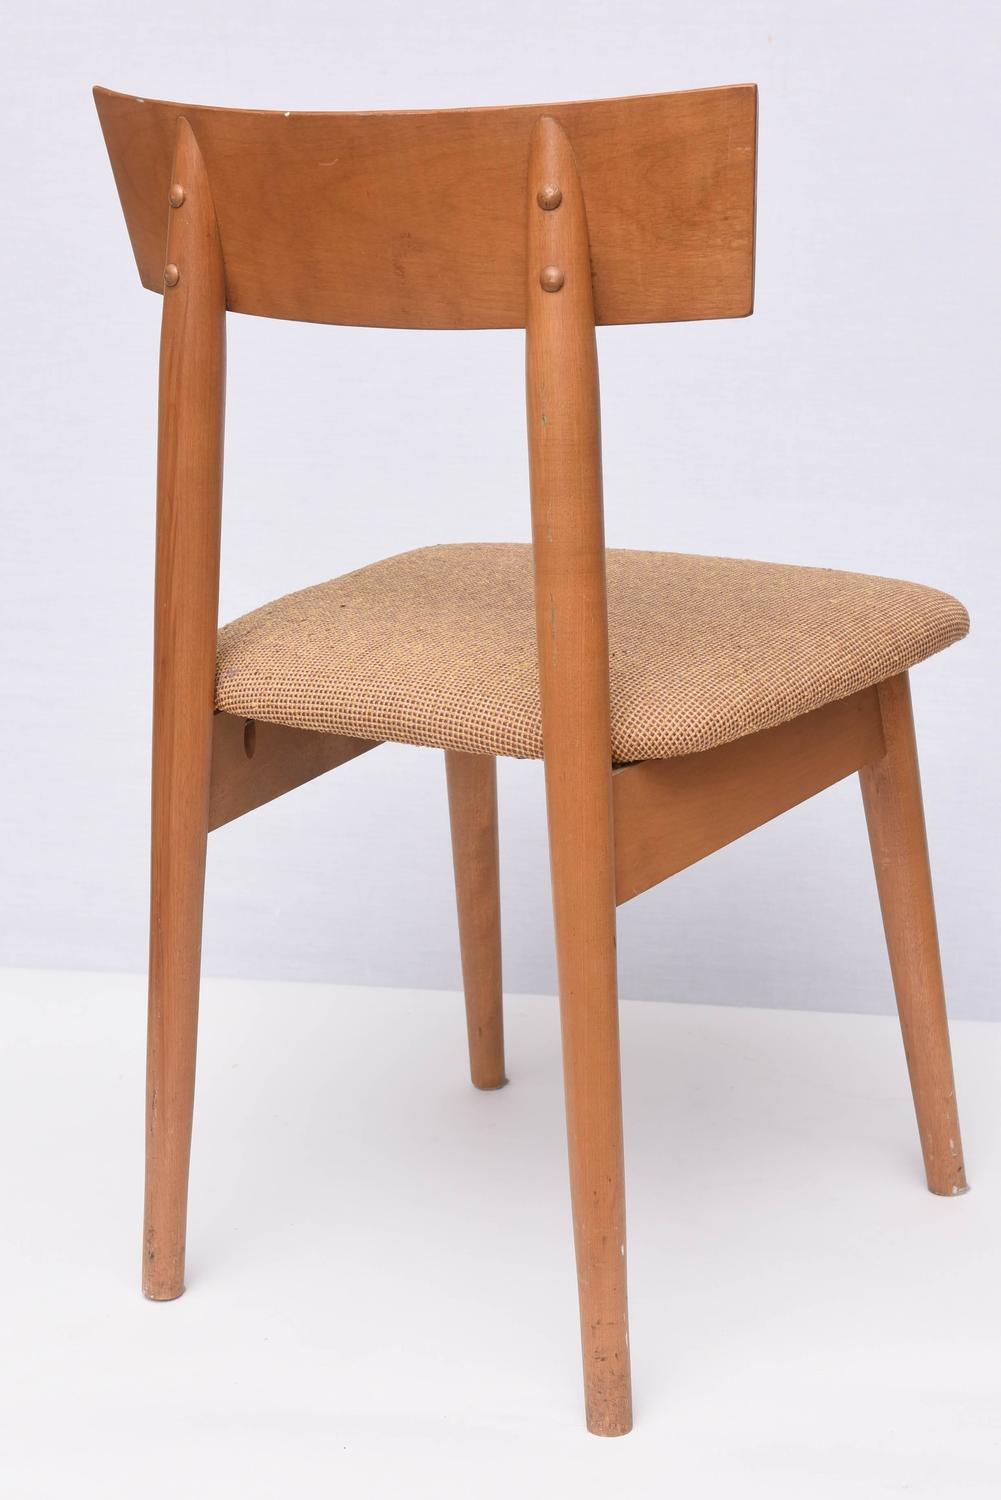 Heywood Wakefield Desk Chair 1960s USA For Sale at 1stdibs